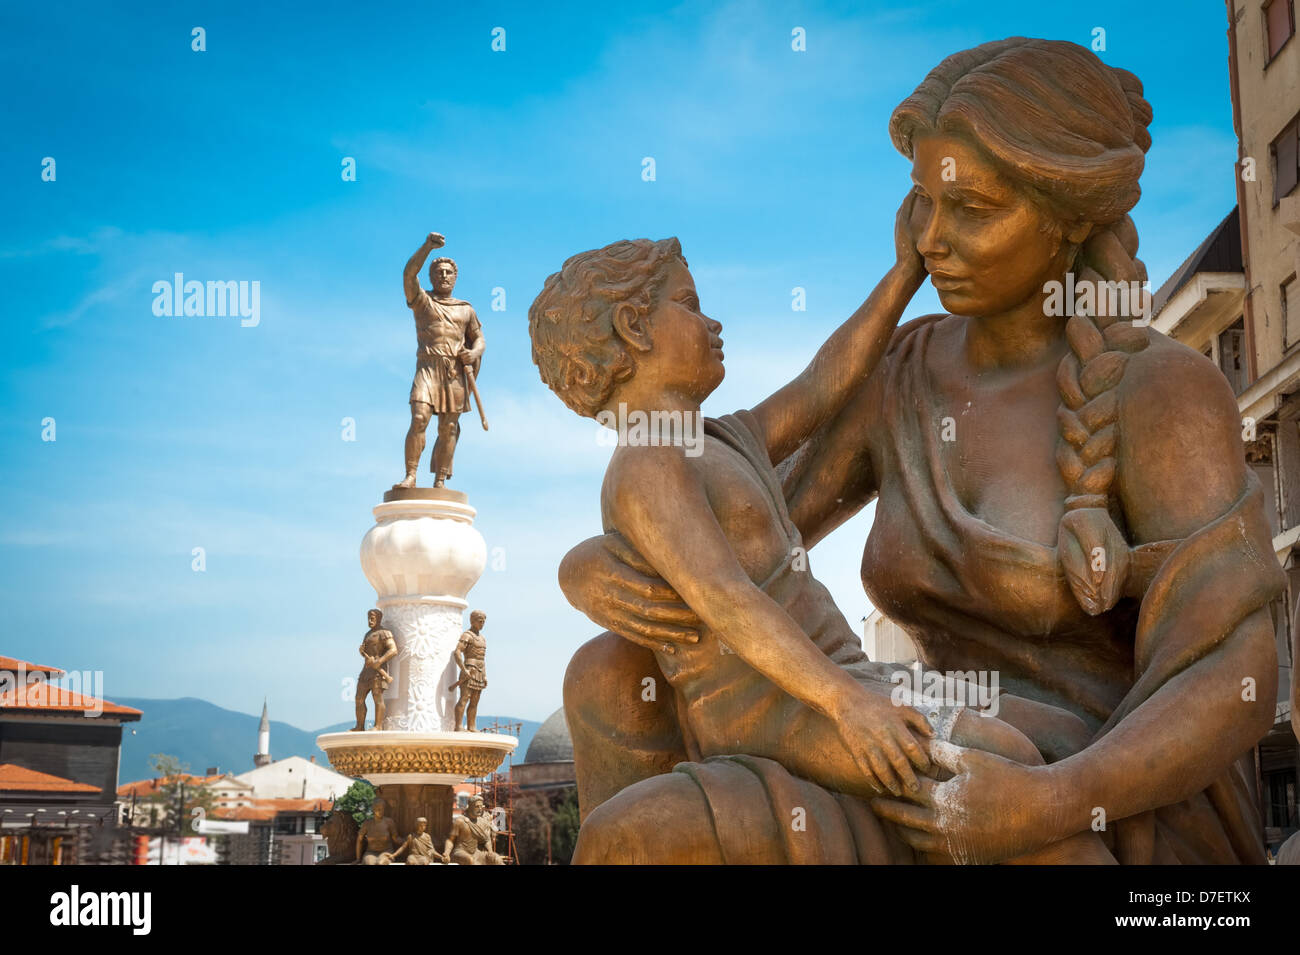 Statue of mother & son and statue of Alexander the Great in background, in center of Skopje (downtown), Macedonia - Stock Image